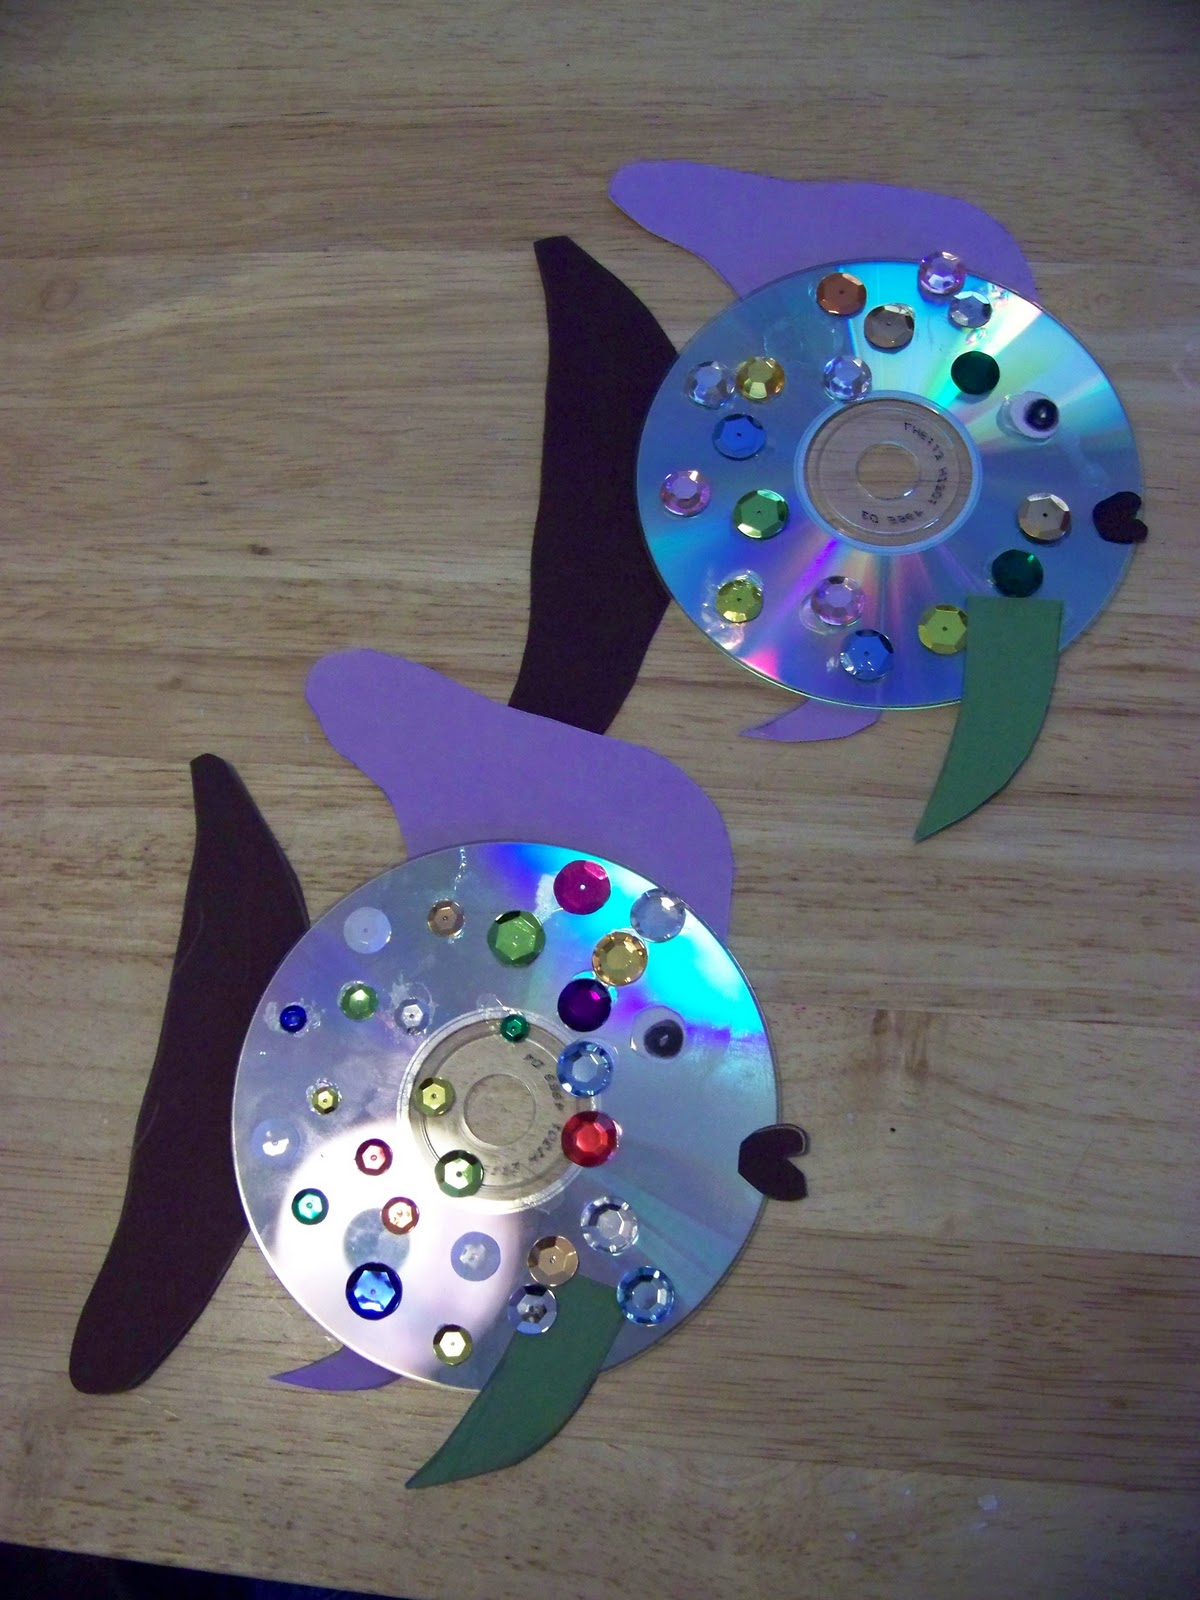 Chipper Recycle Crafts: From Old CD to Rainbow Fish! | Let's Go ...